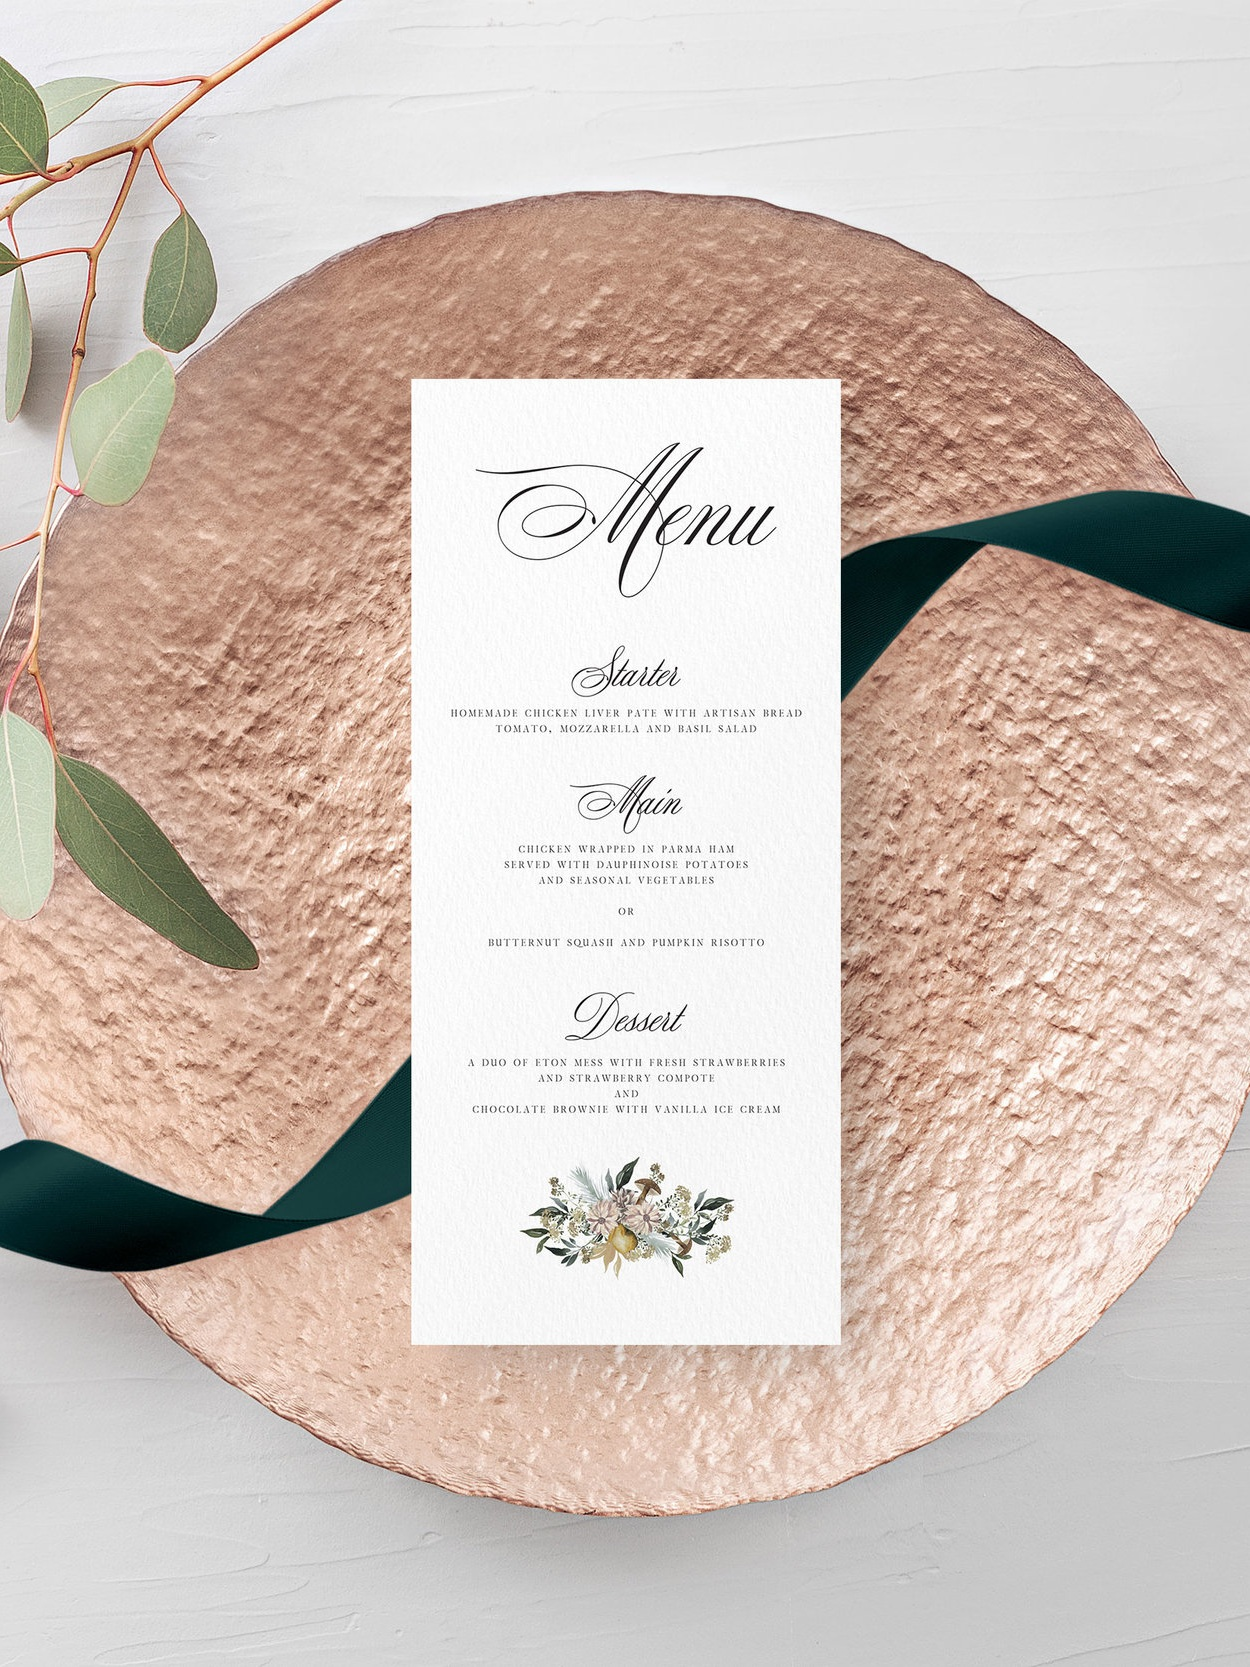 Oxford - Traditional typography is paired with winter floral artwork for a menu card ideally suited to a winter wedding day.Our menu cards can be printed single- or double-sided, and can double as place cards by having them personalised with a guest name too.Pricing£1.15 - standard, single-sided / £1.65 - personalised, single-sided£1.40 - standard, double-sided / £1.90 - personalised, double-sided